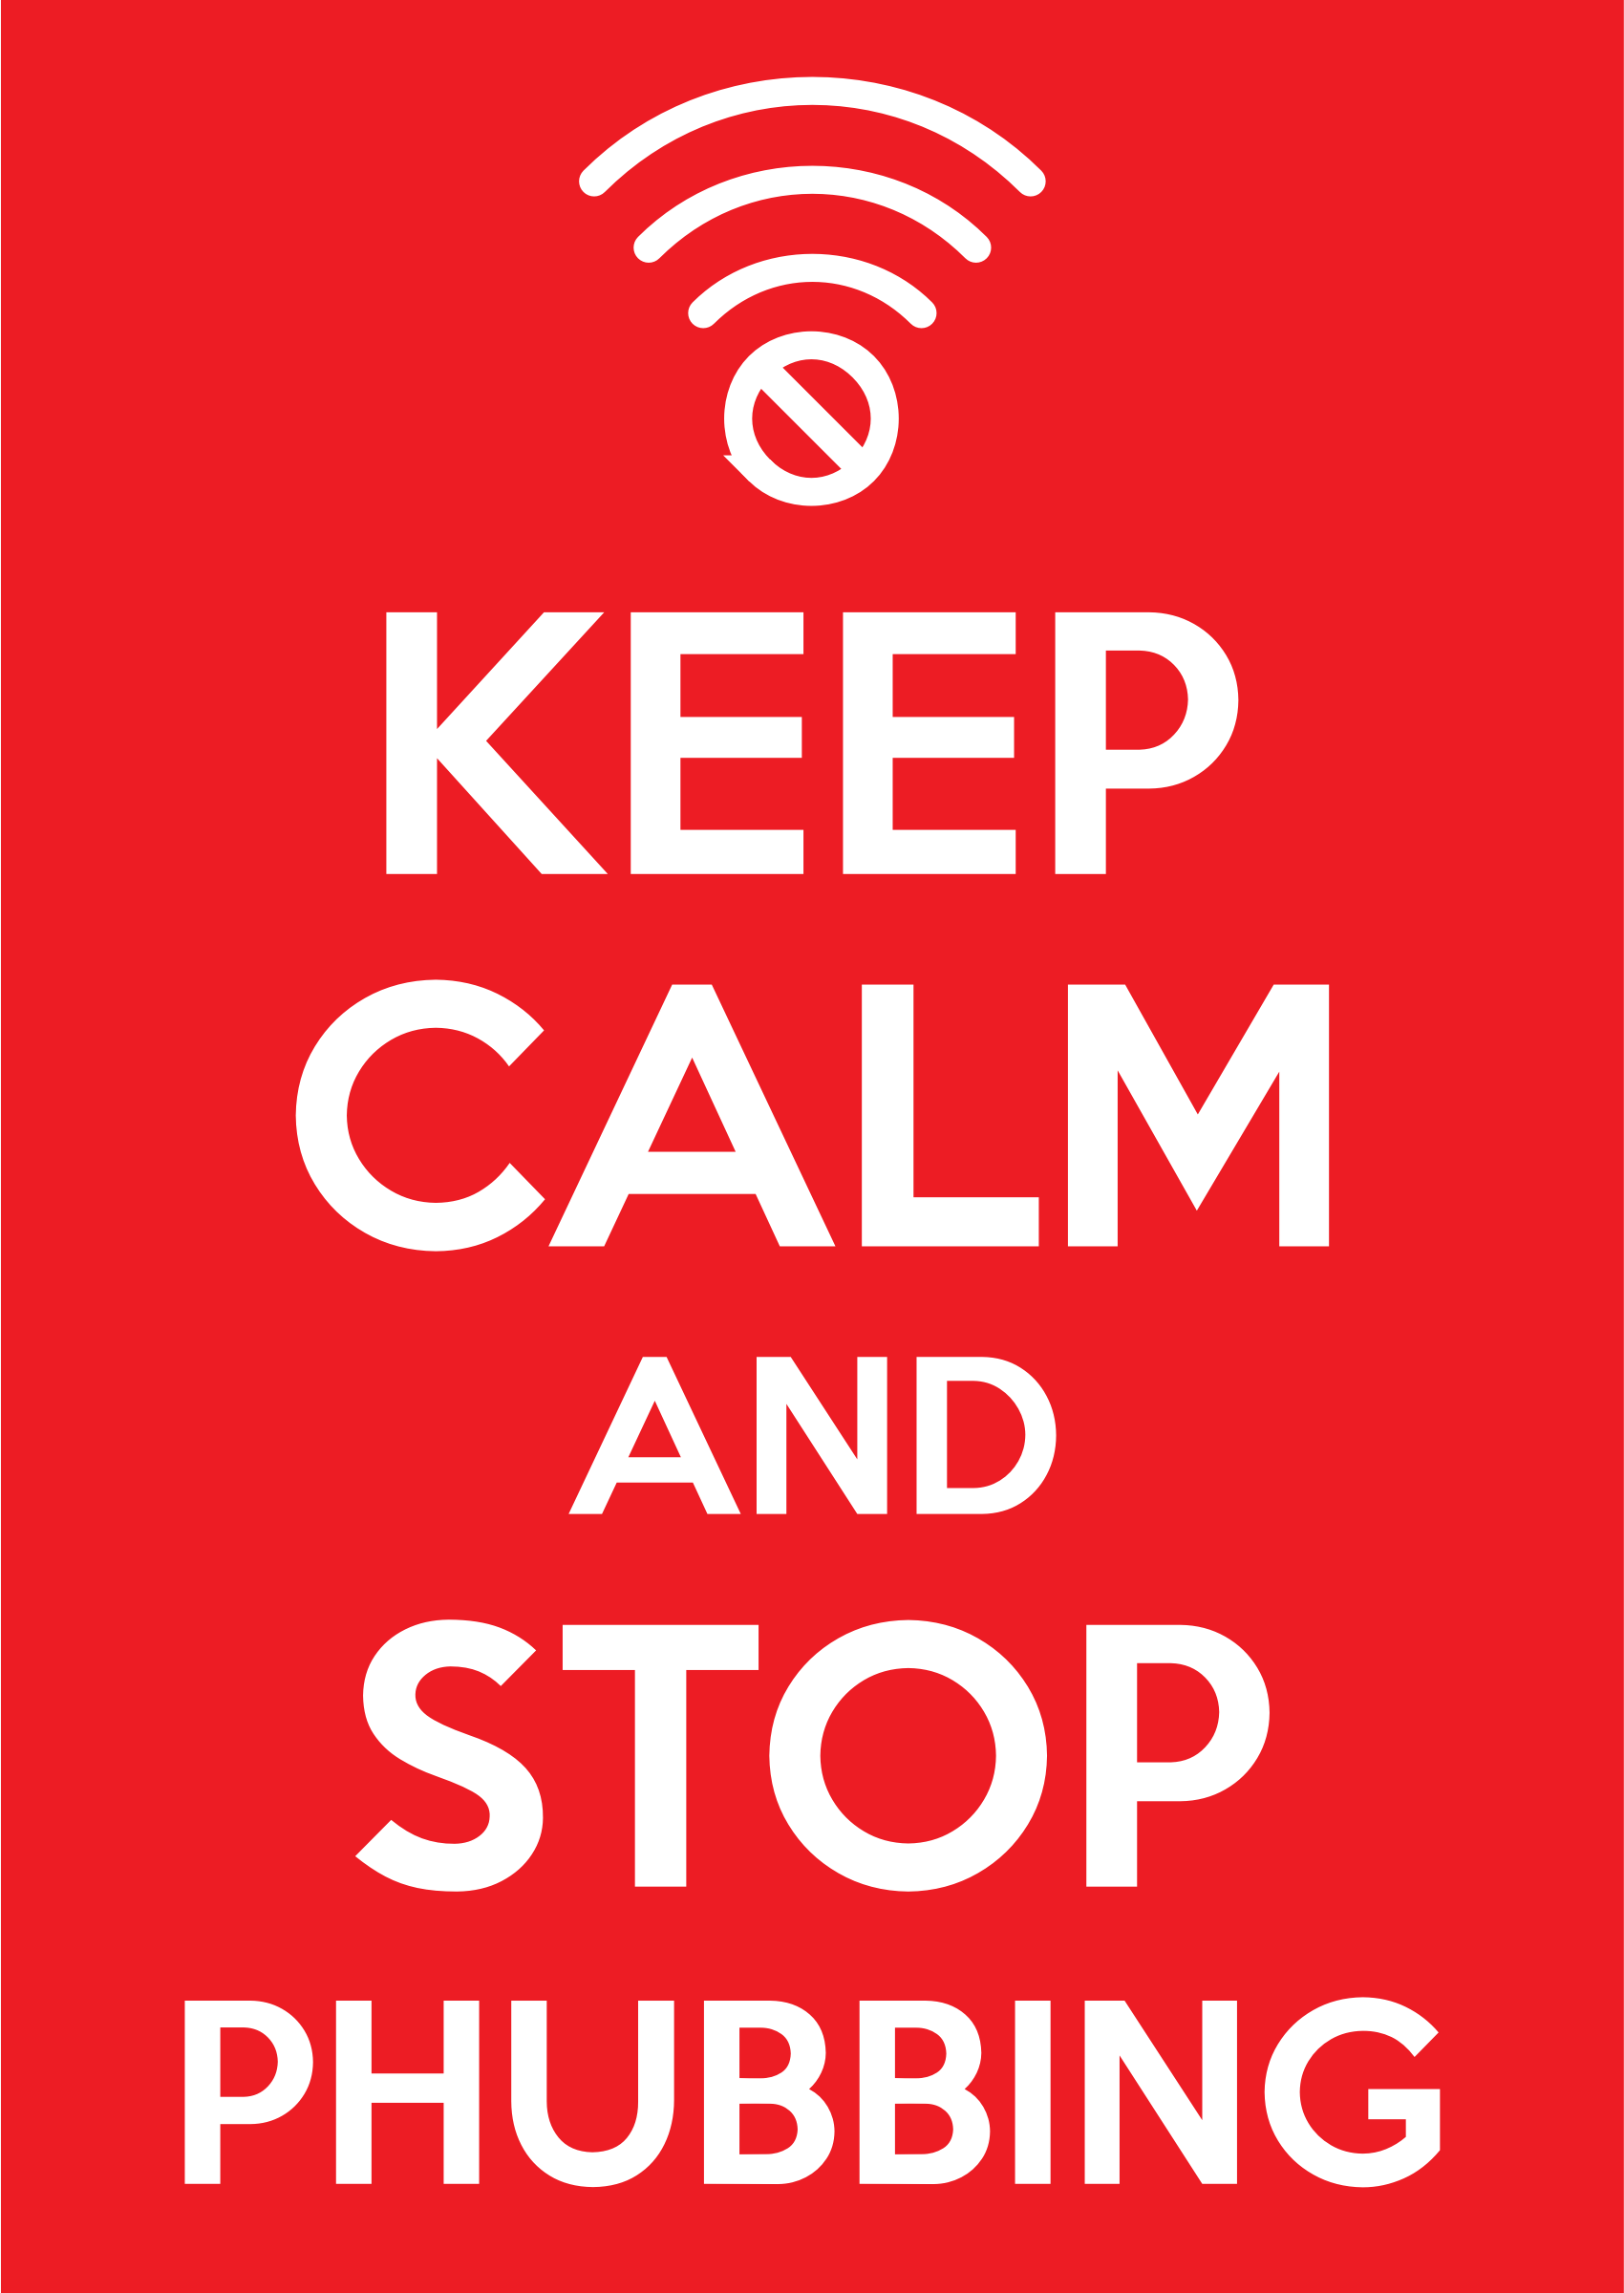 Keep Calm and Stop Phubbing by dabnotu